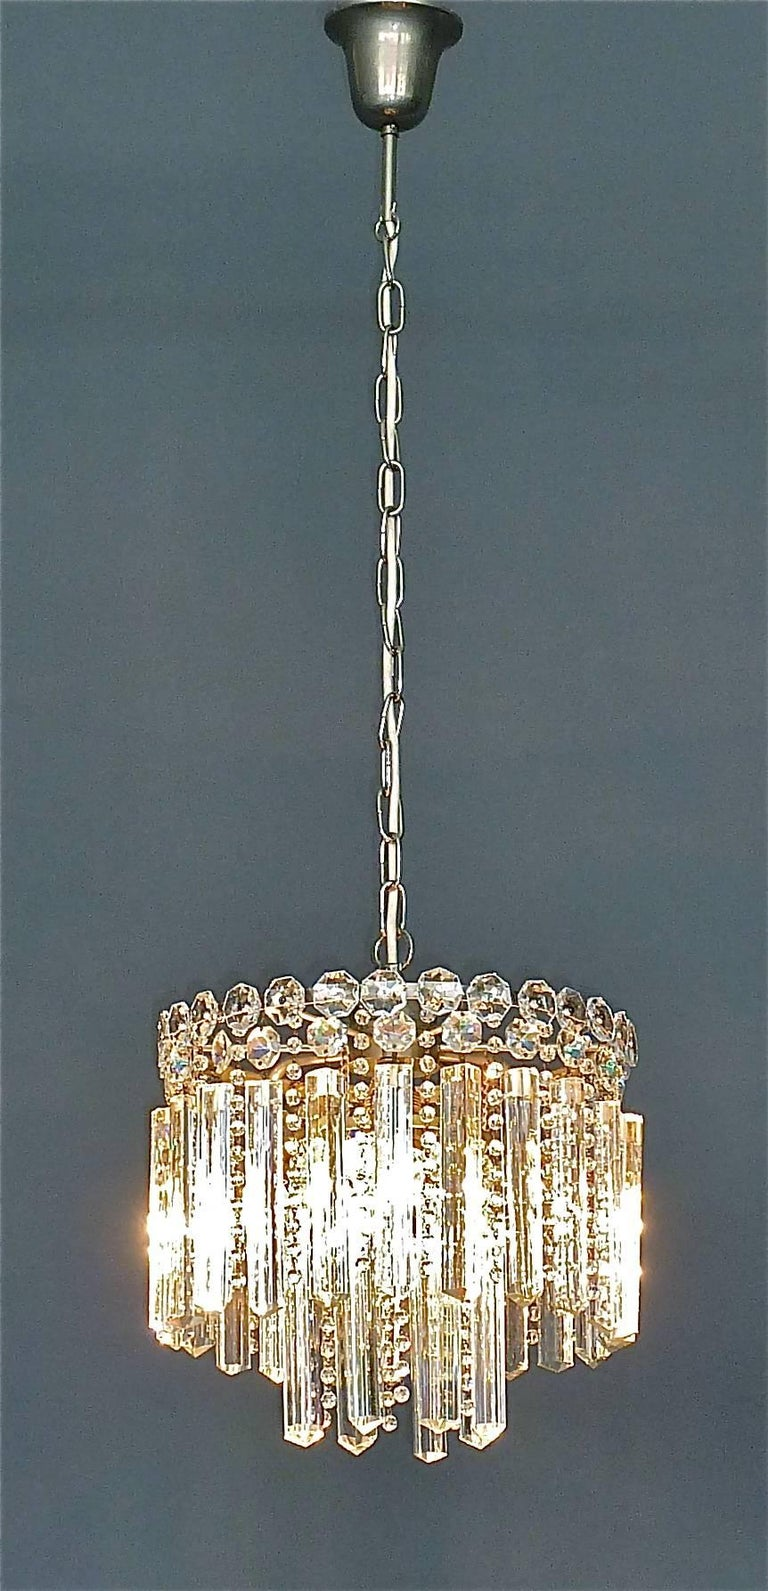 Precious Bakalowits or Lobmeyr Faceted Crystal Glass Chandelier, Austria, 1950s For Sale 3